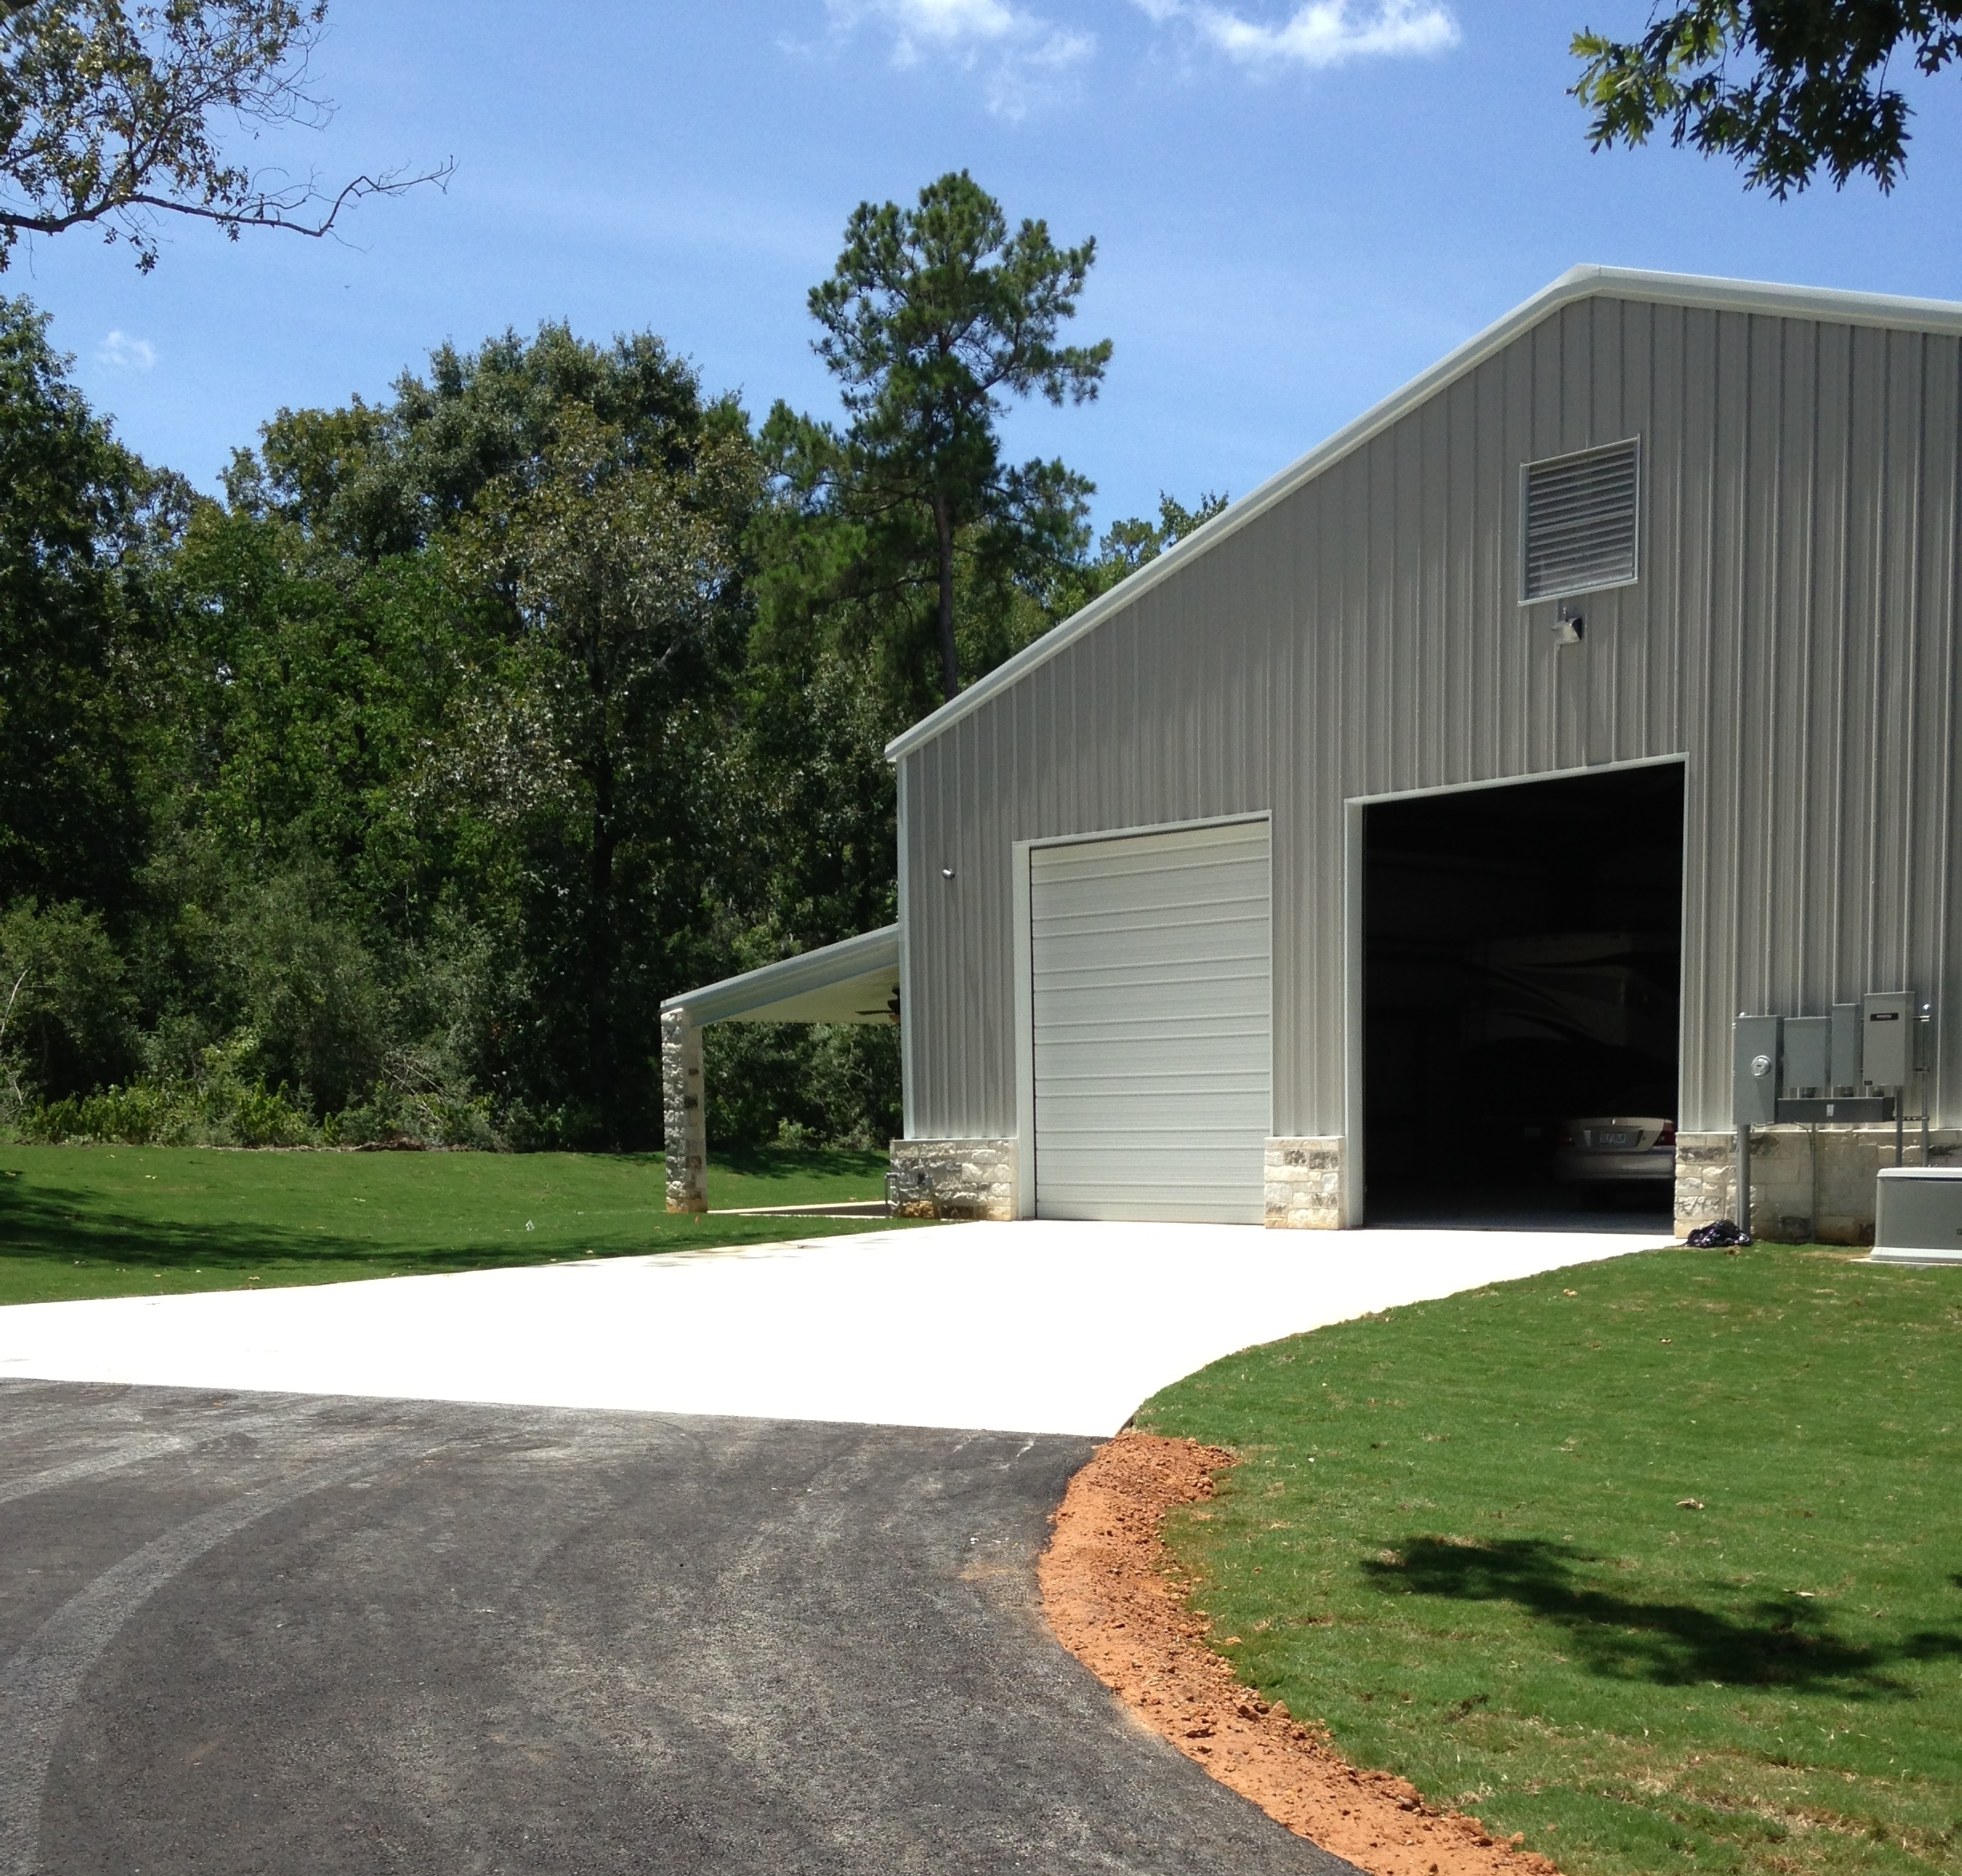 Driveways - We do both Commercial & Residential driveways.(Image: Half-concrete & half-asphalt driveway)